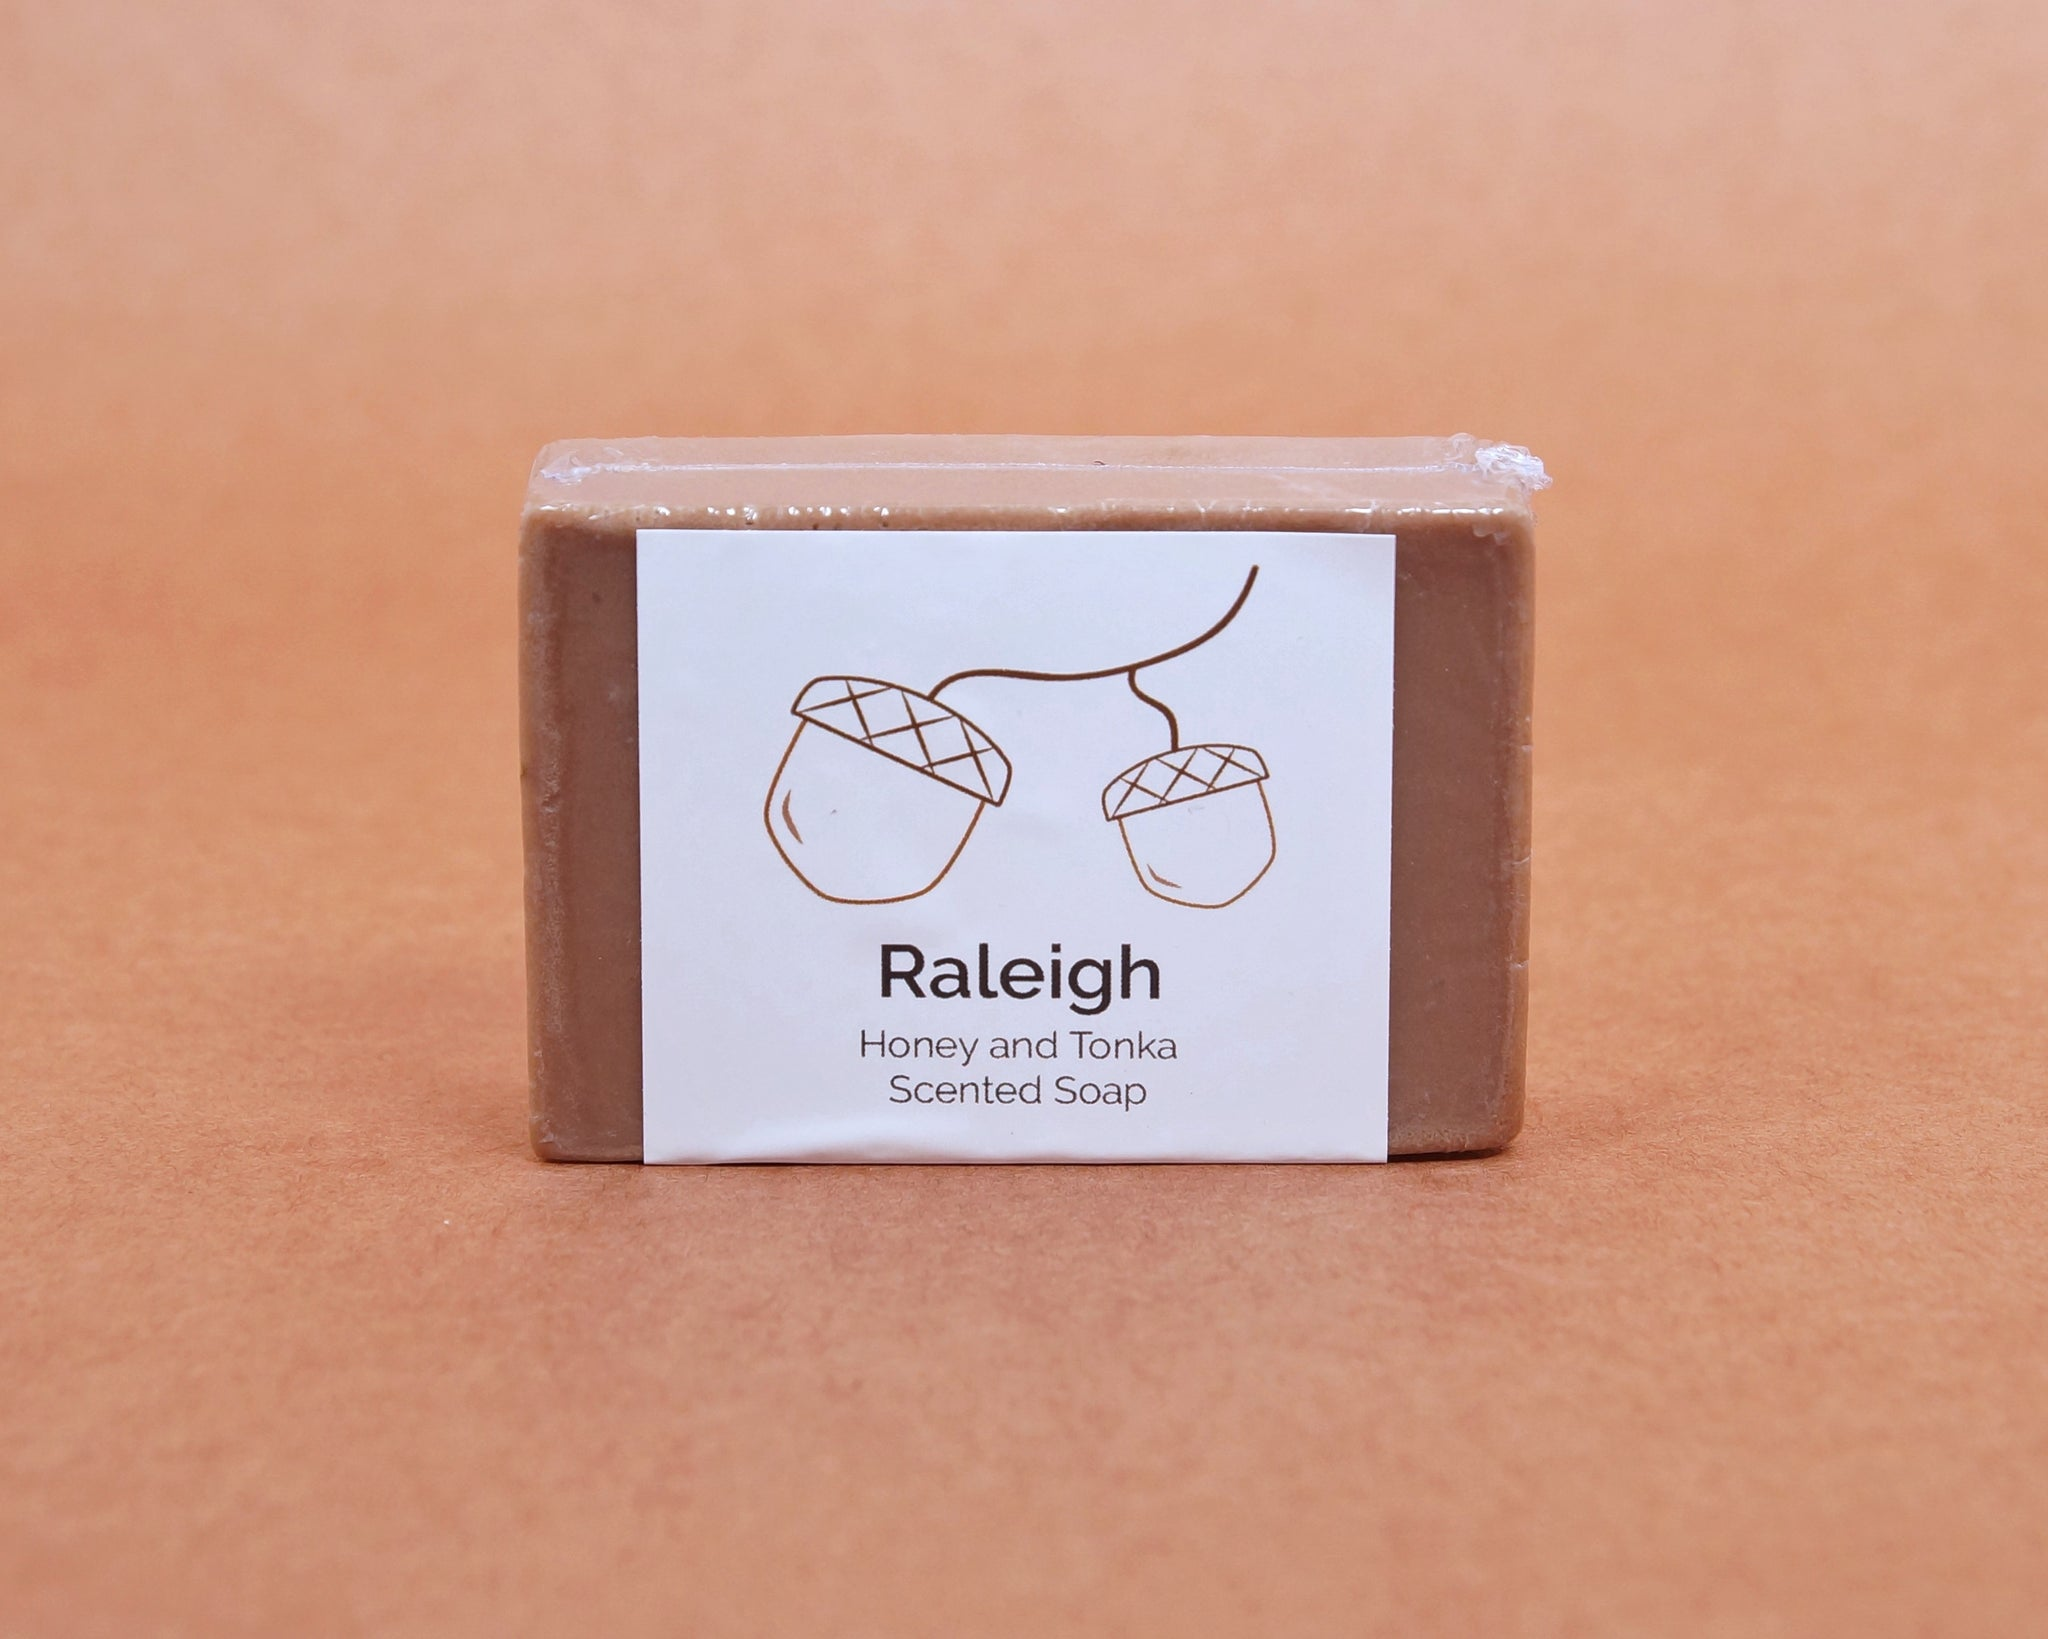 Raleigh NC Scented Soap | Honey and Tonka